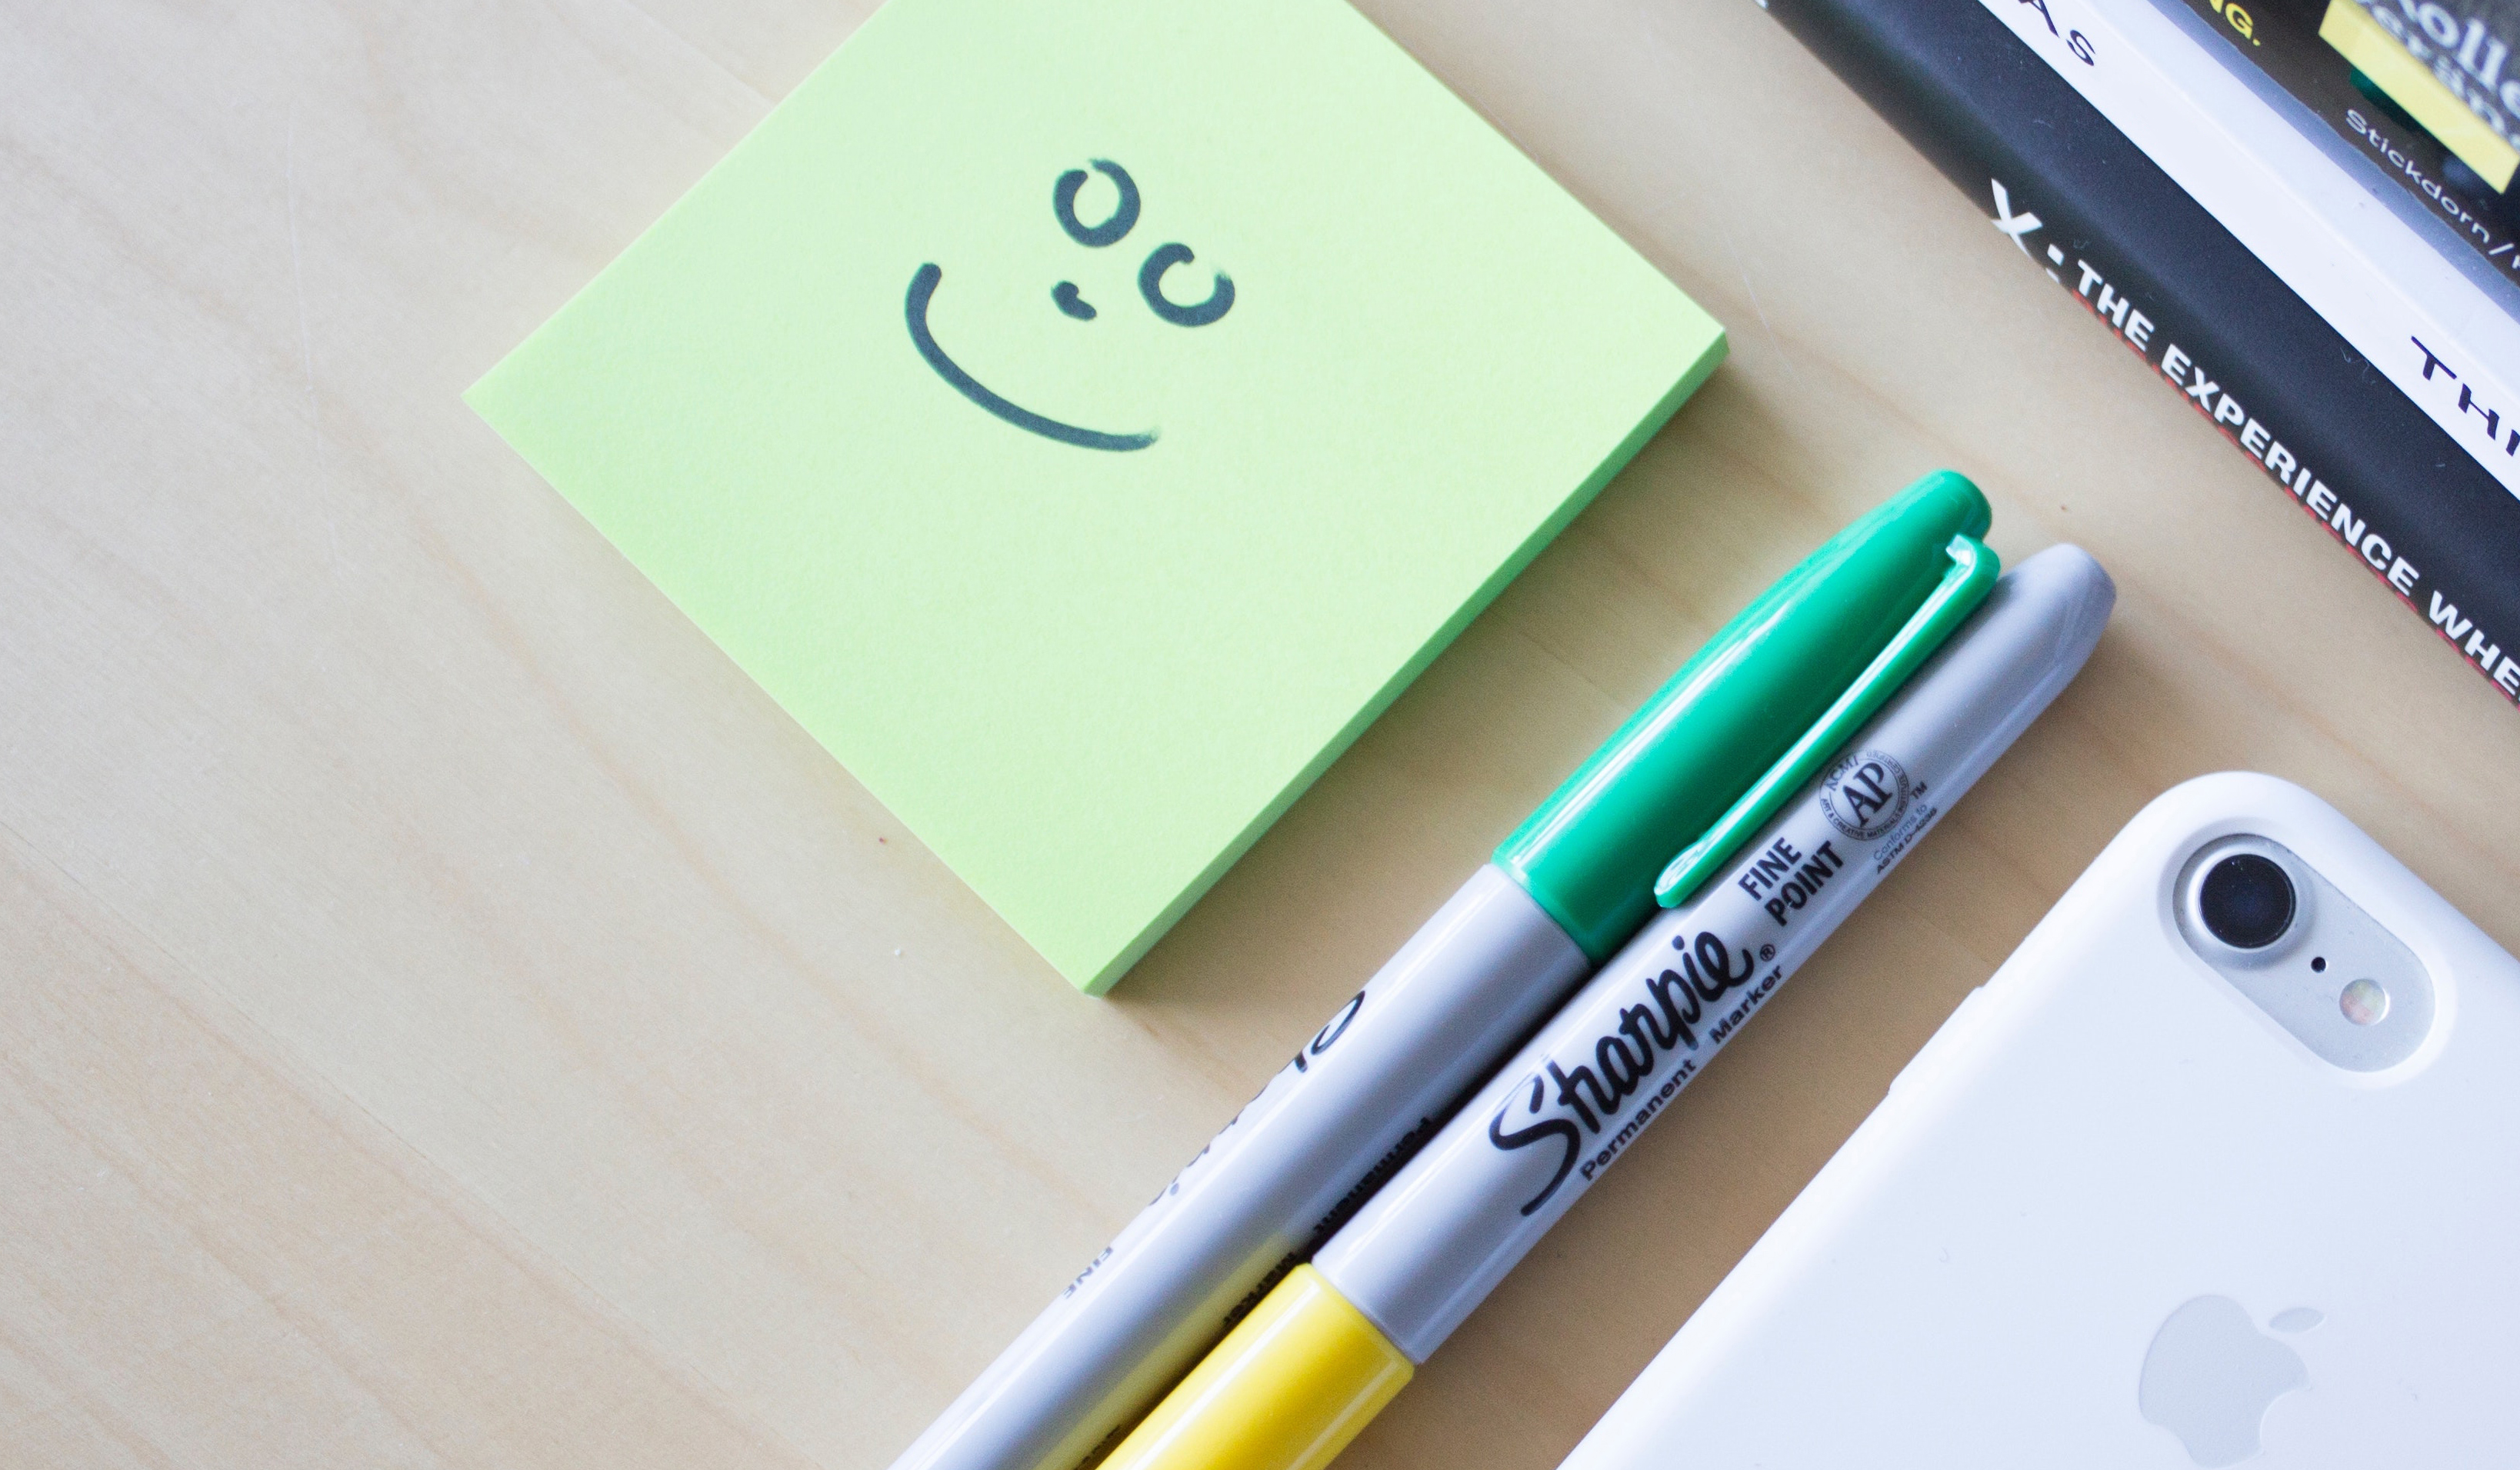 A pad of sticky notes, a stack of books, two pens and a mobile phone.